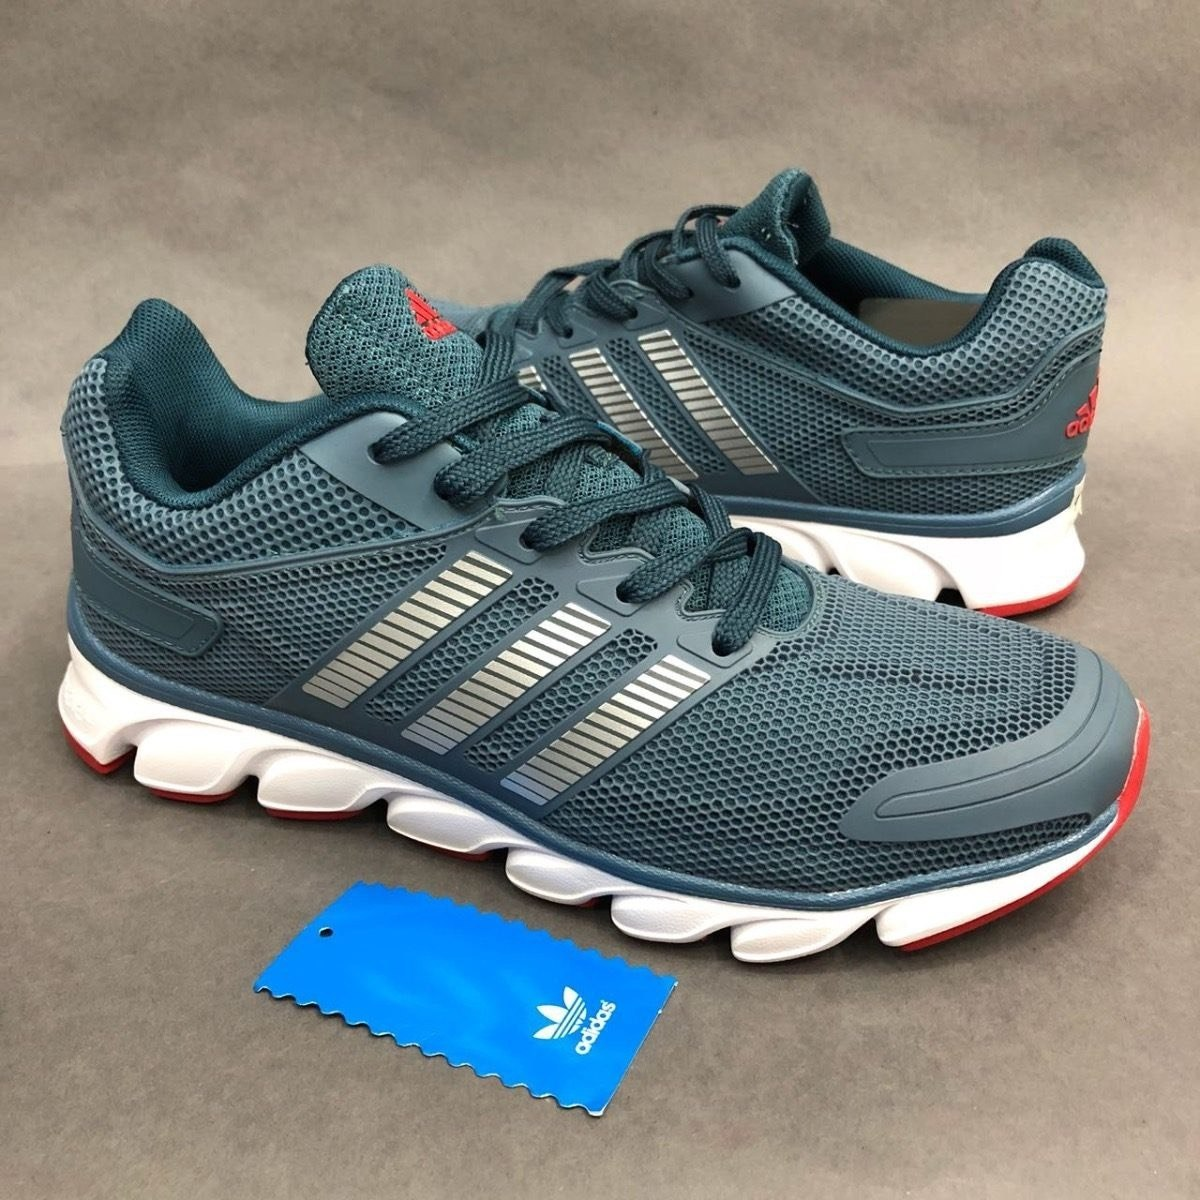 huge discount 1ad72 36d0e hot tenis adidas climacool ride masculino 7f306 89152